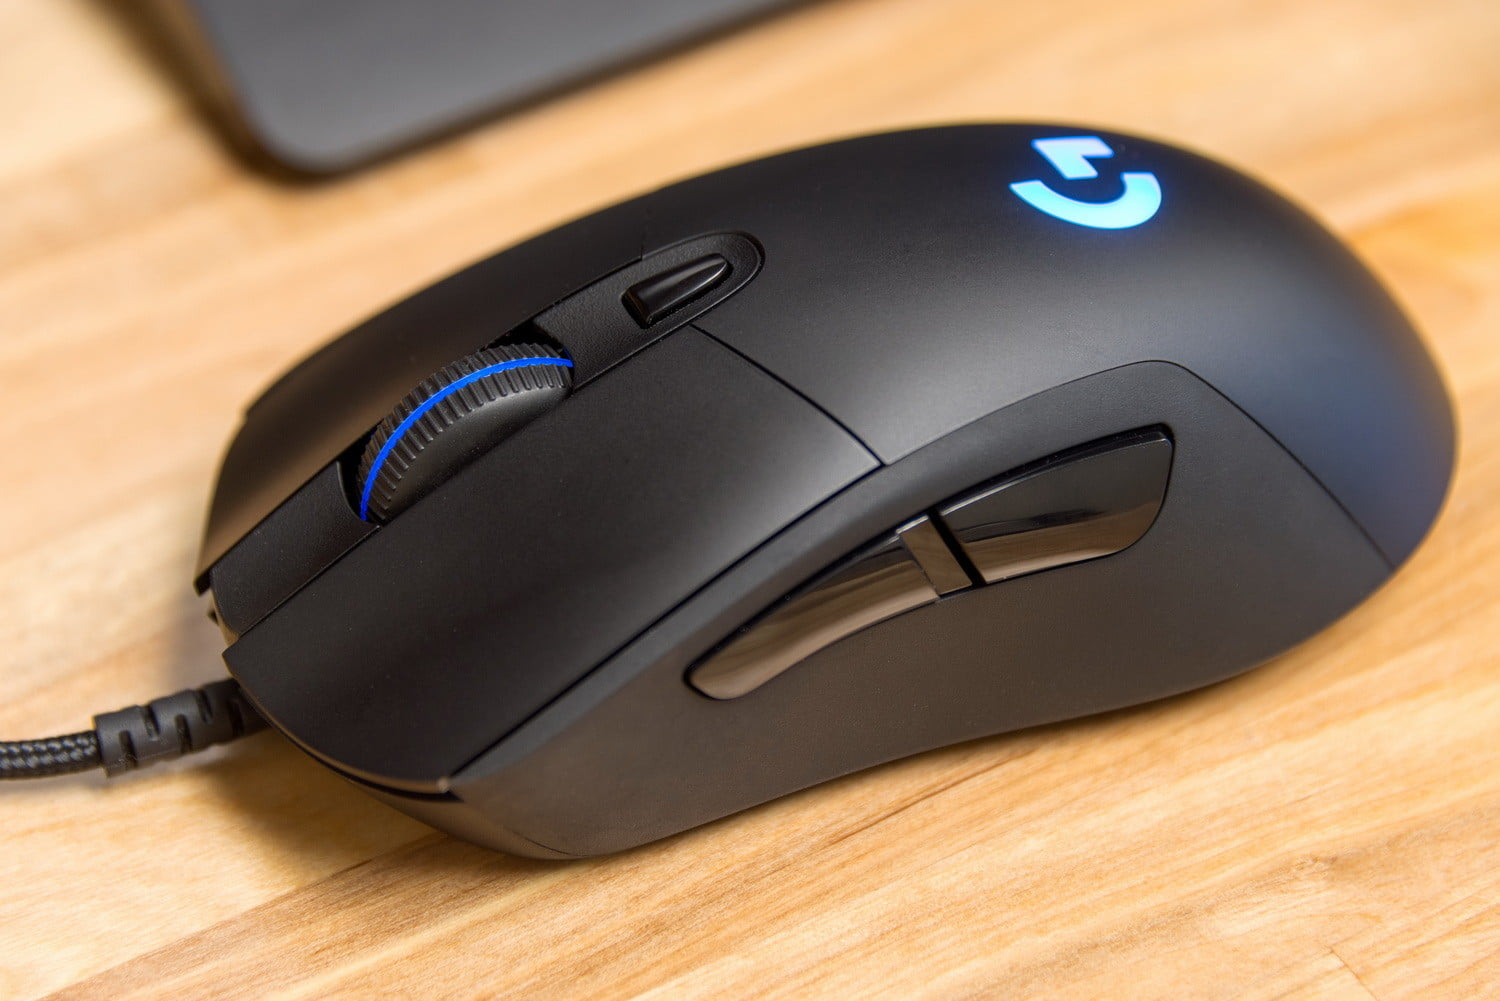 da00d72f480 Optical vs. Laser Mouse | Digital Trends